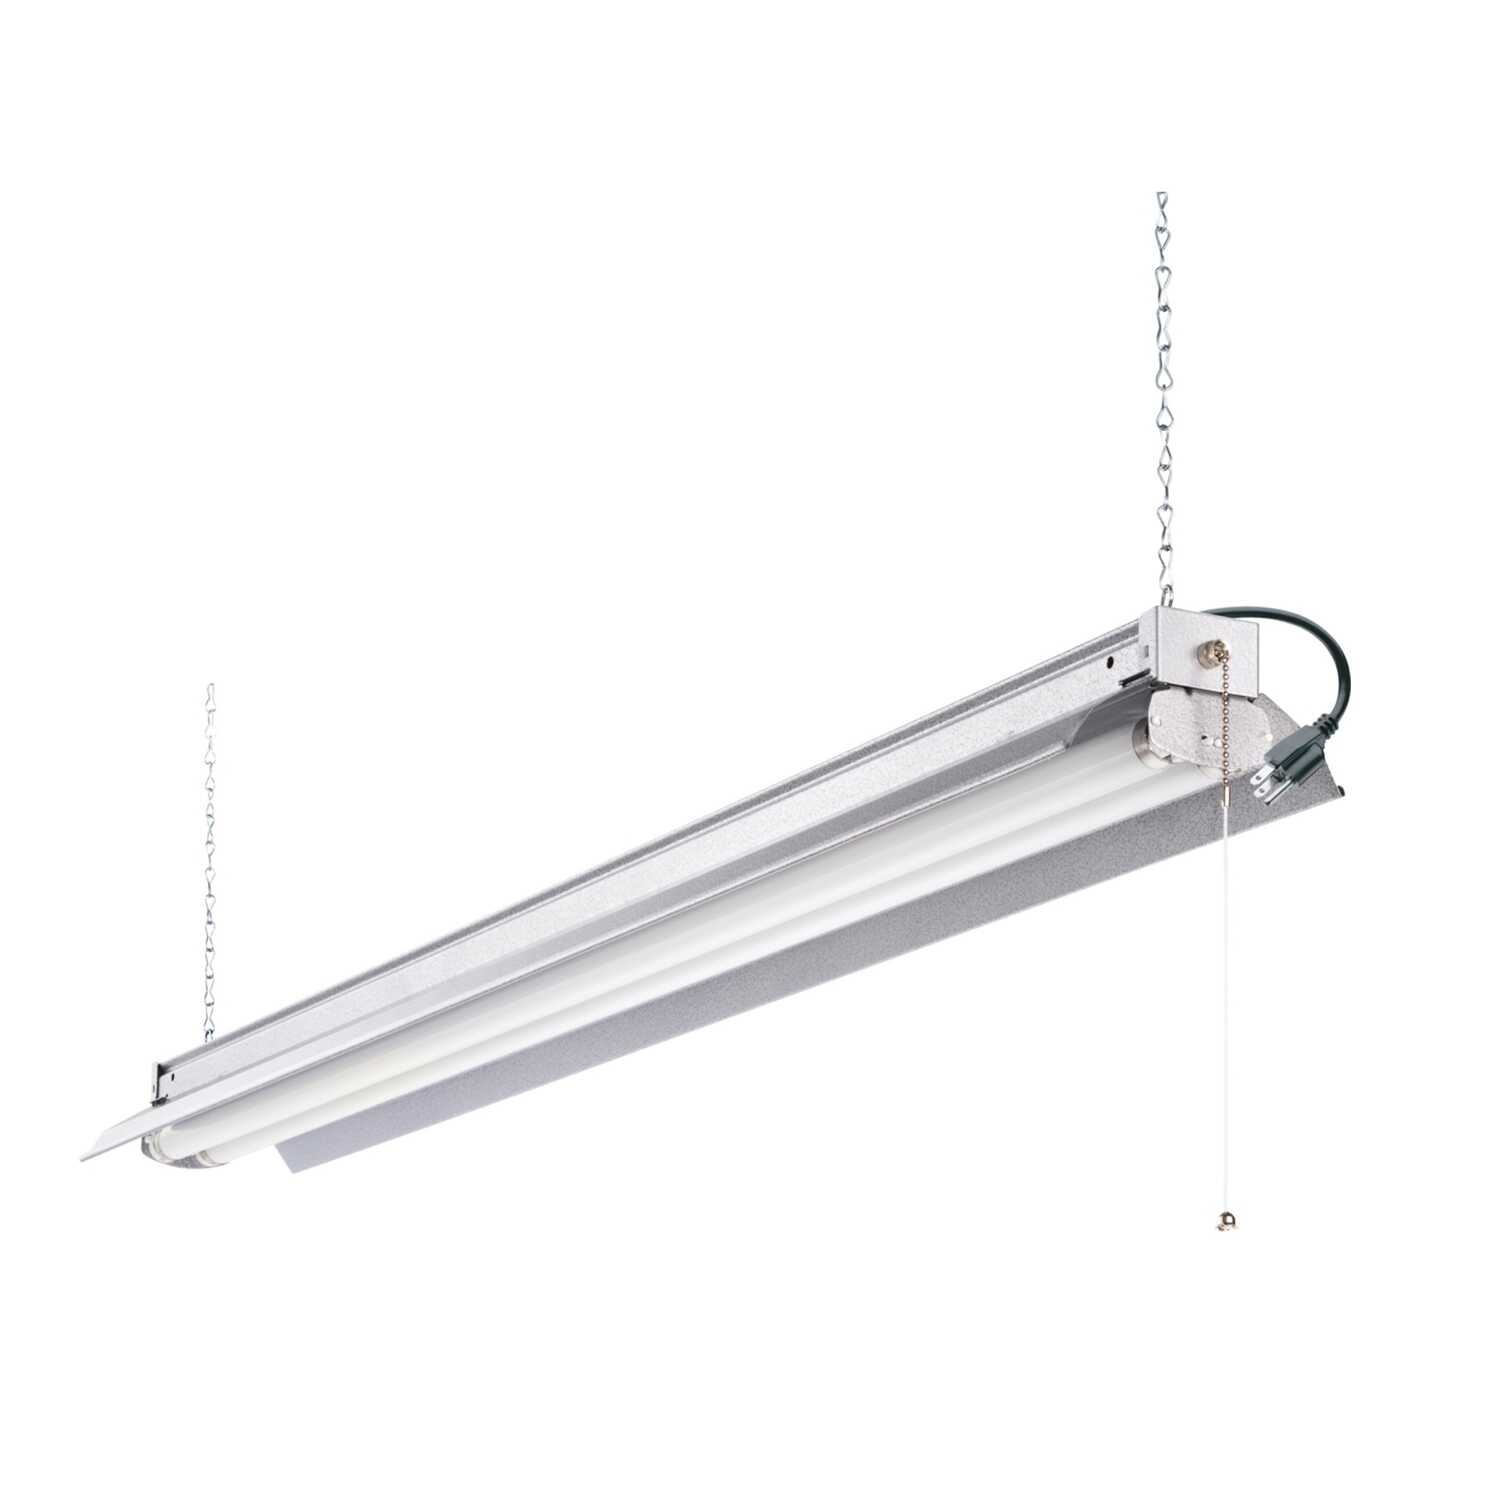 Lithonia Lighting 48 in. 64 watts Shop Light Fluorescent - Ace Hardware